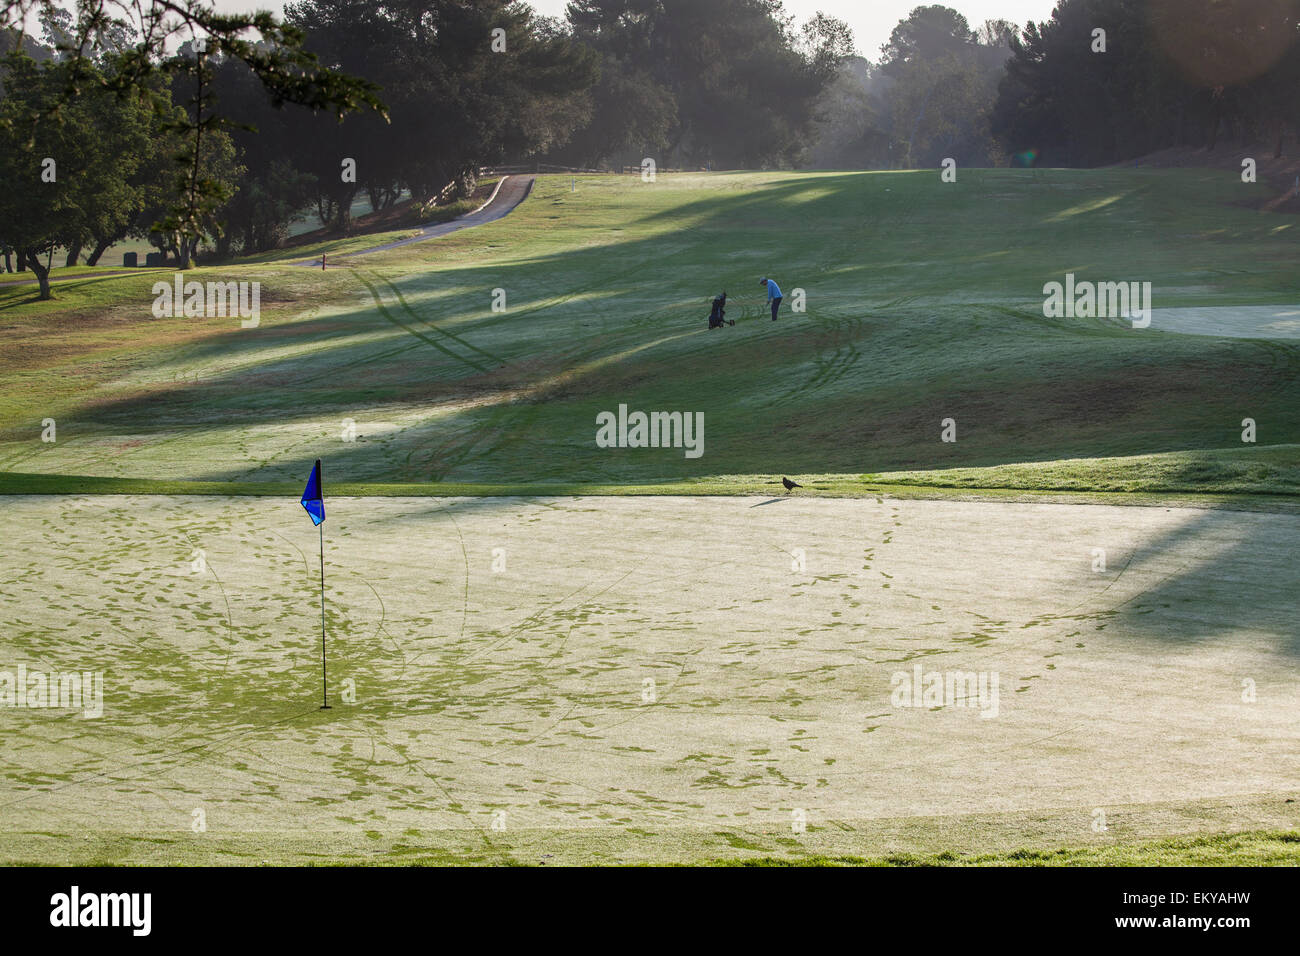 Rancho Park golf course, golf courses and landscaping are a major user of water. Los Angeles, California, USA - Stock Image